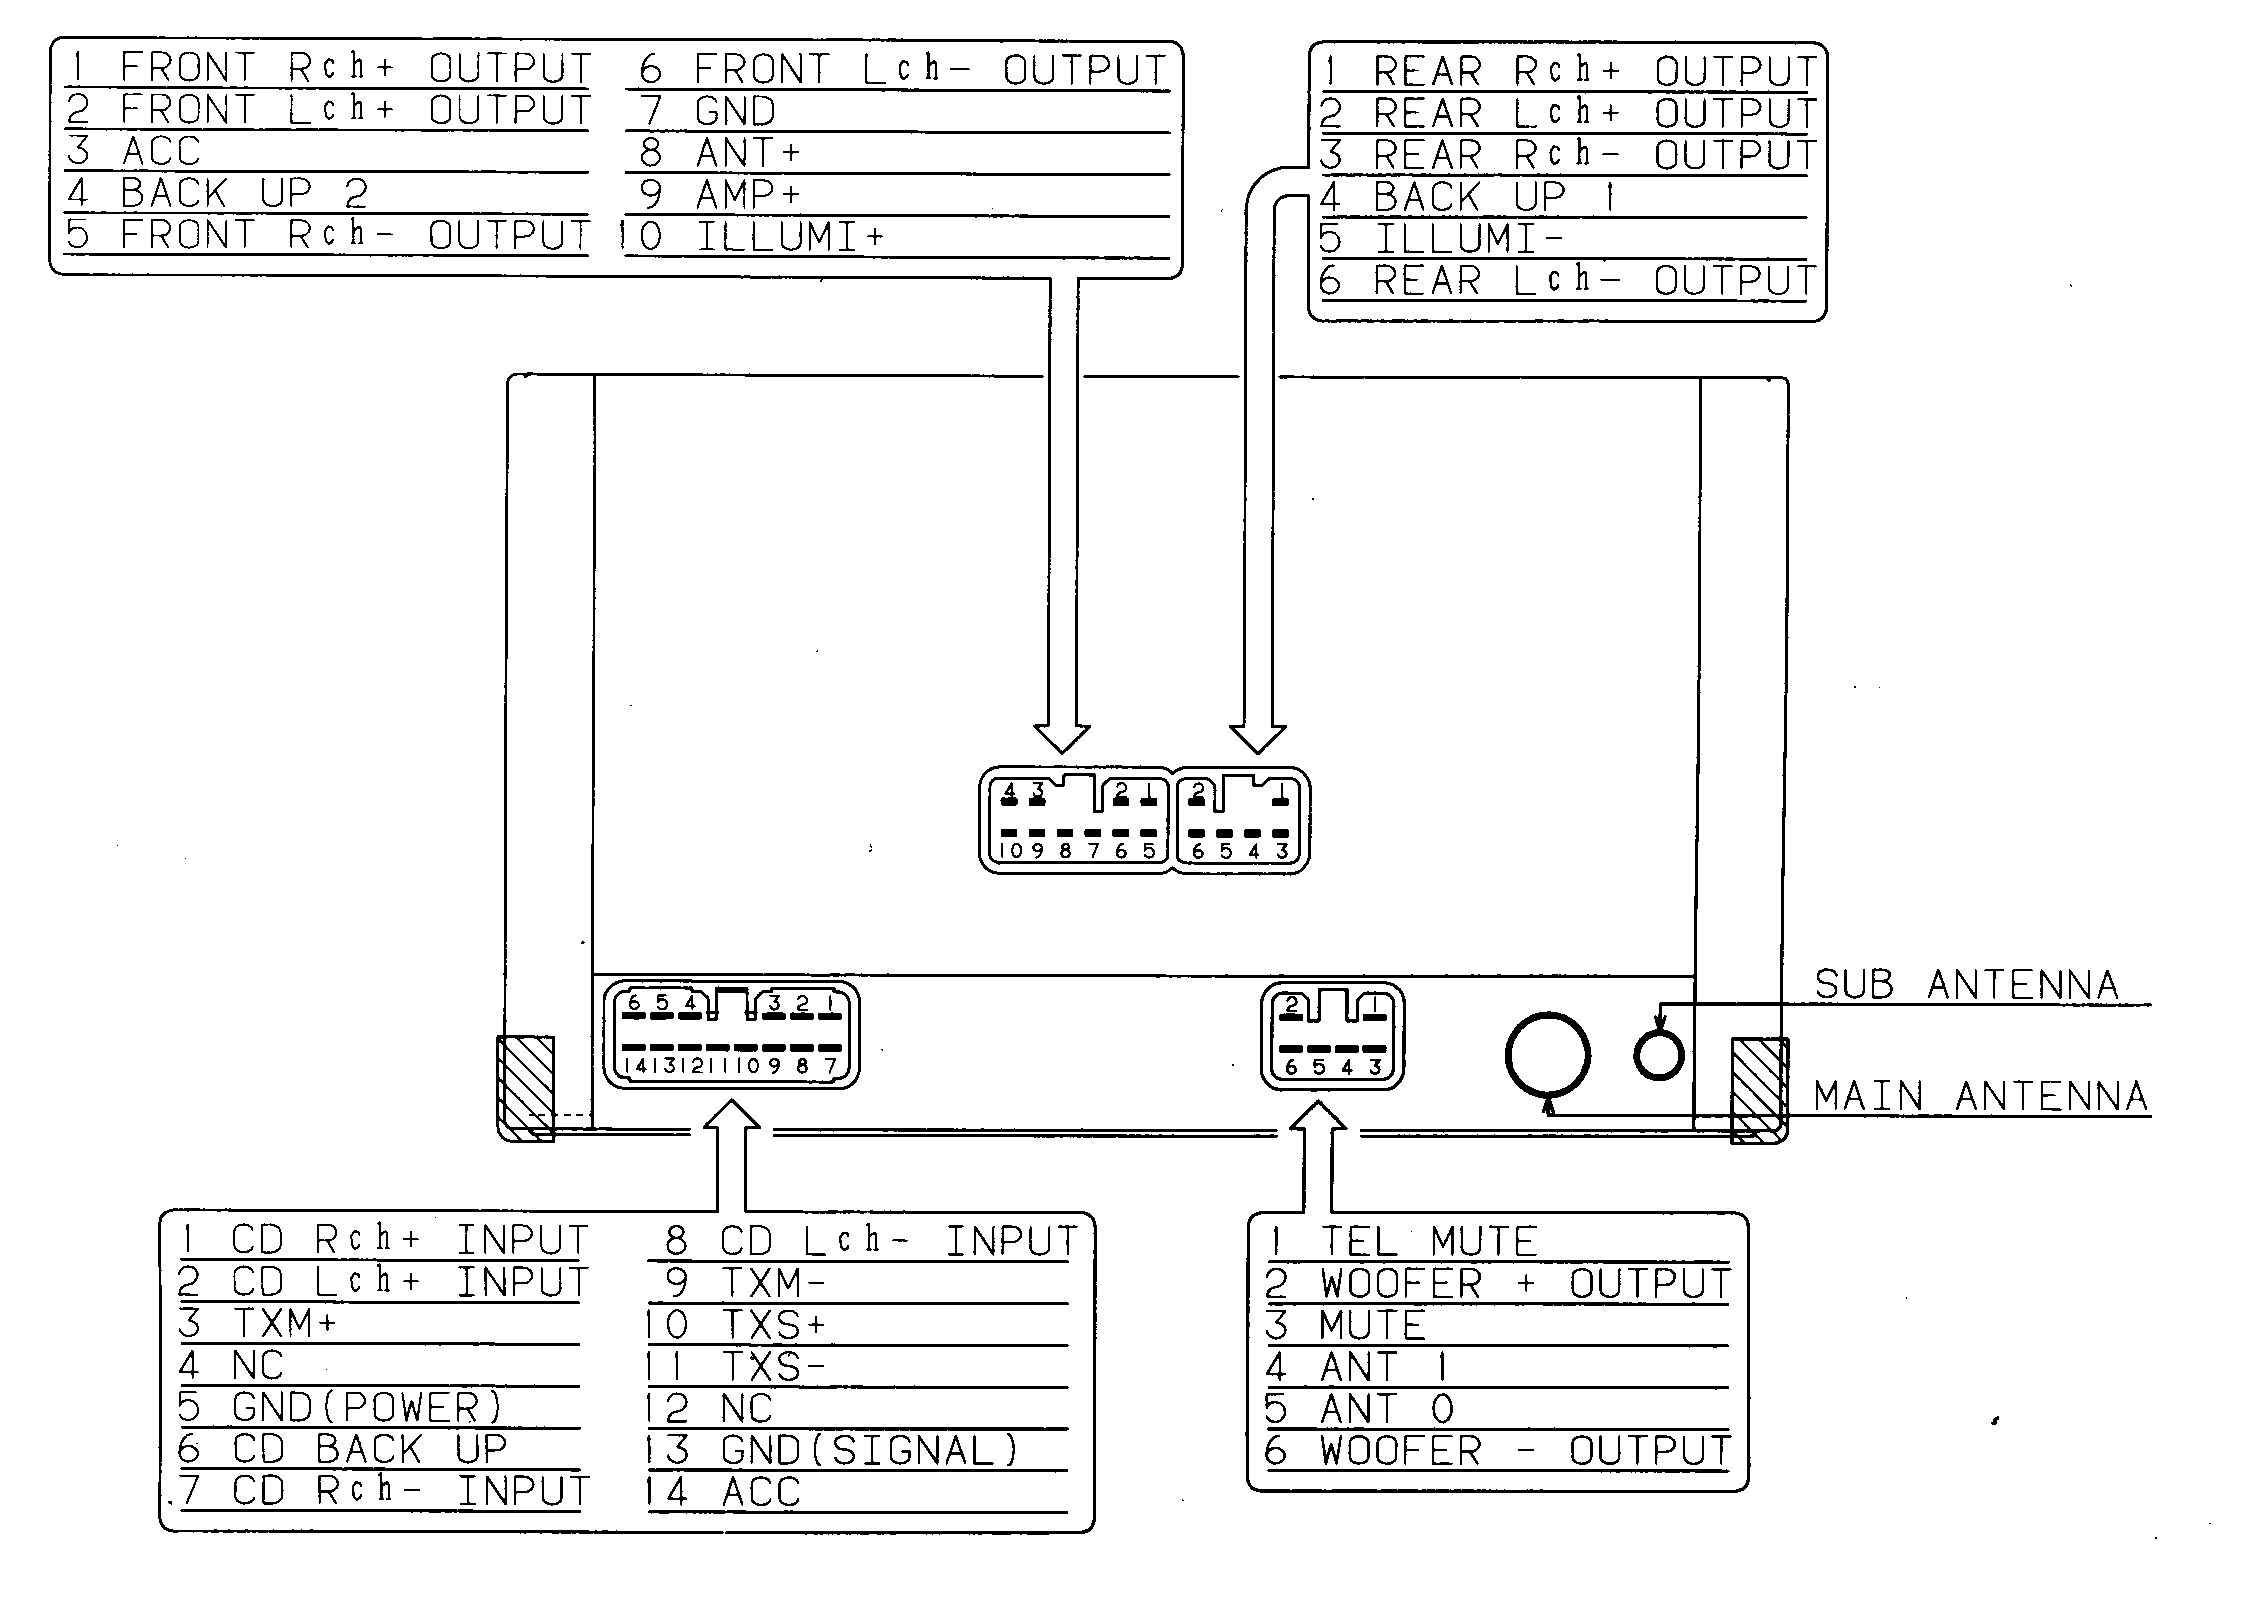 WireHarnessLexus121001 car audio wire diagram codes lexus factory car stereo repair stereo wiring harness diagram at gsmx.co